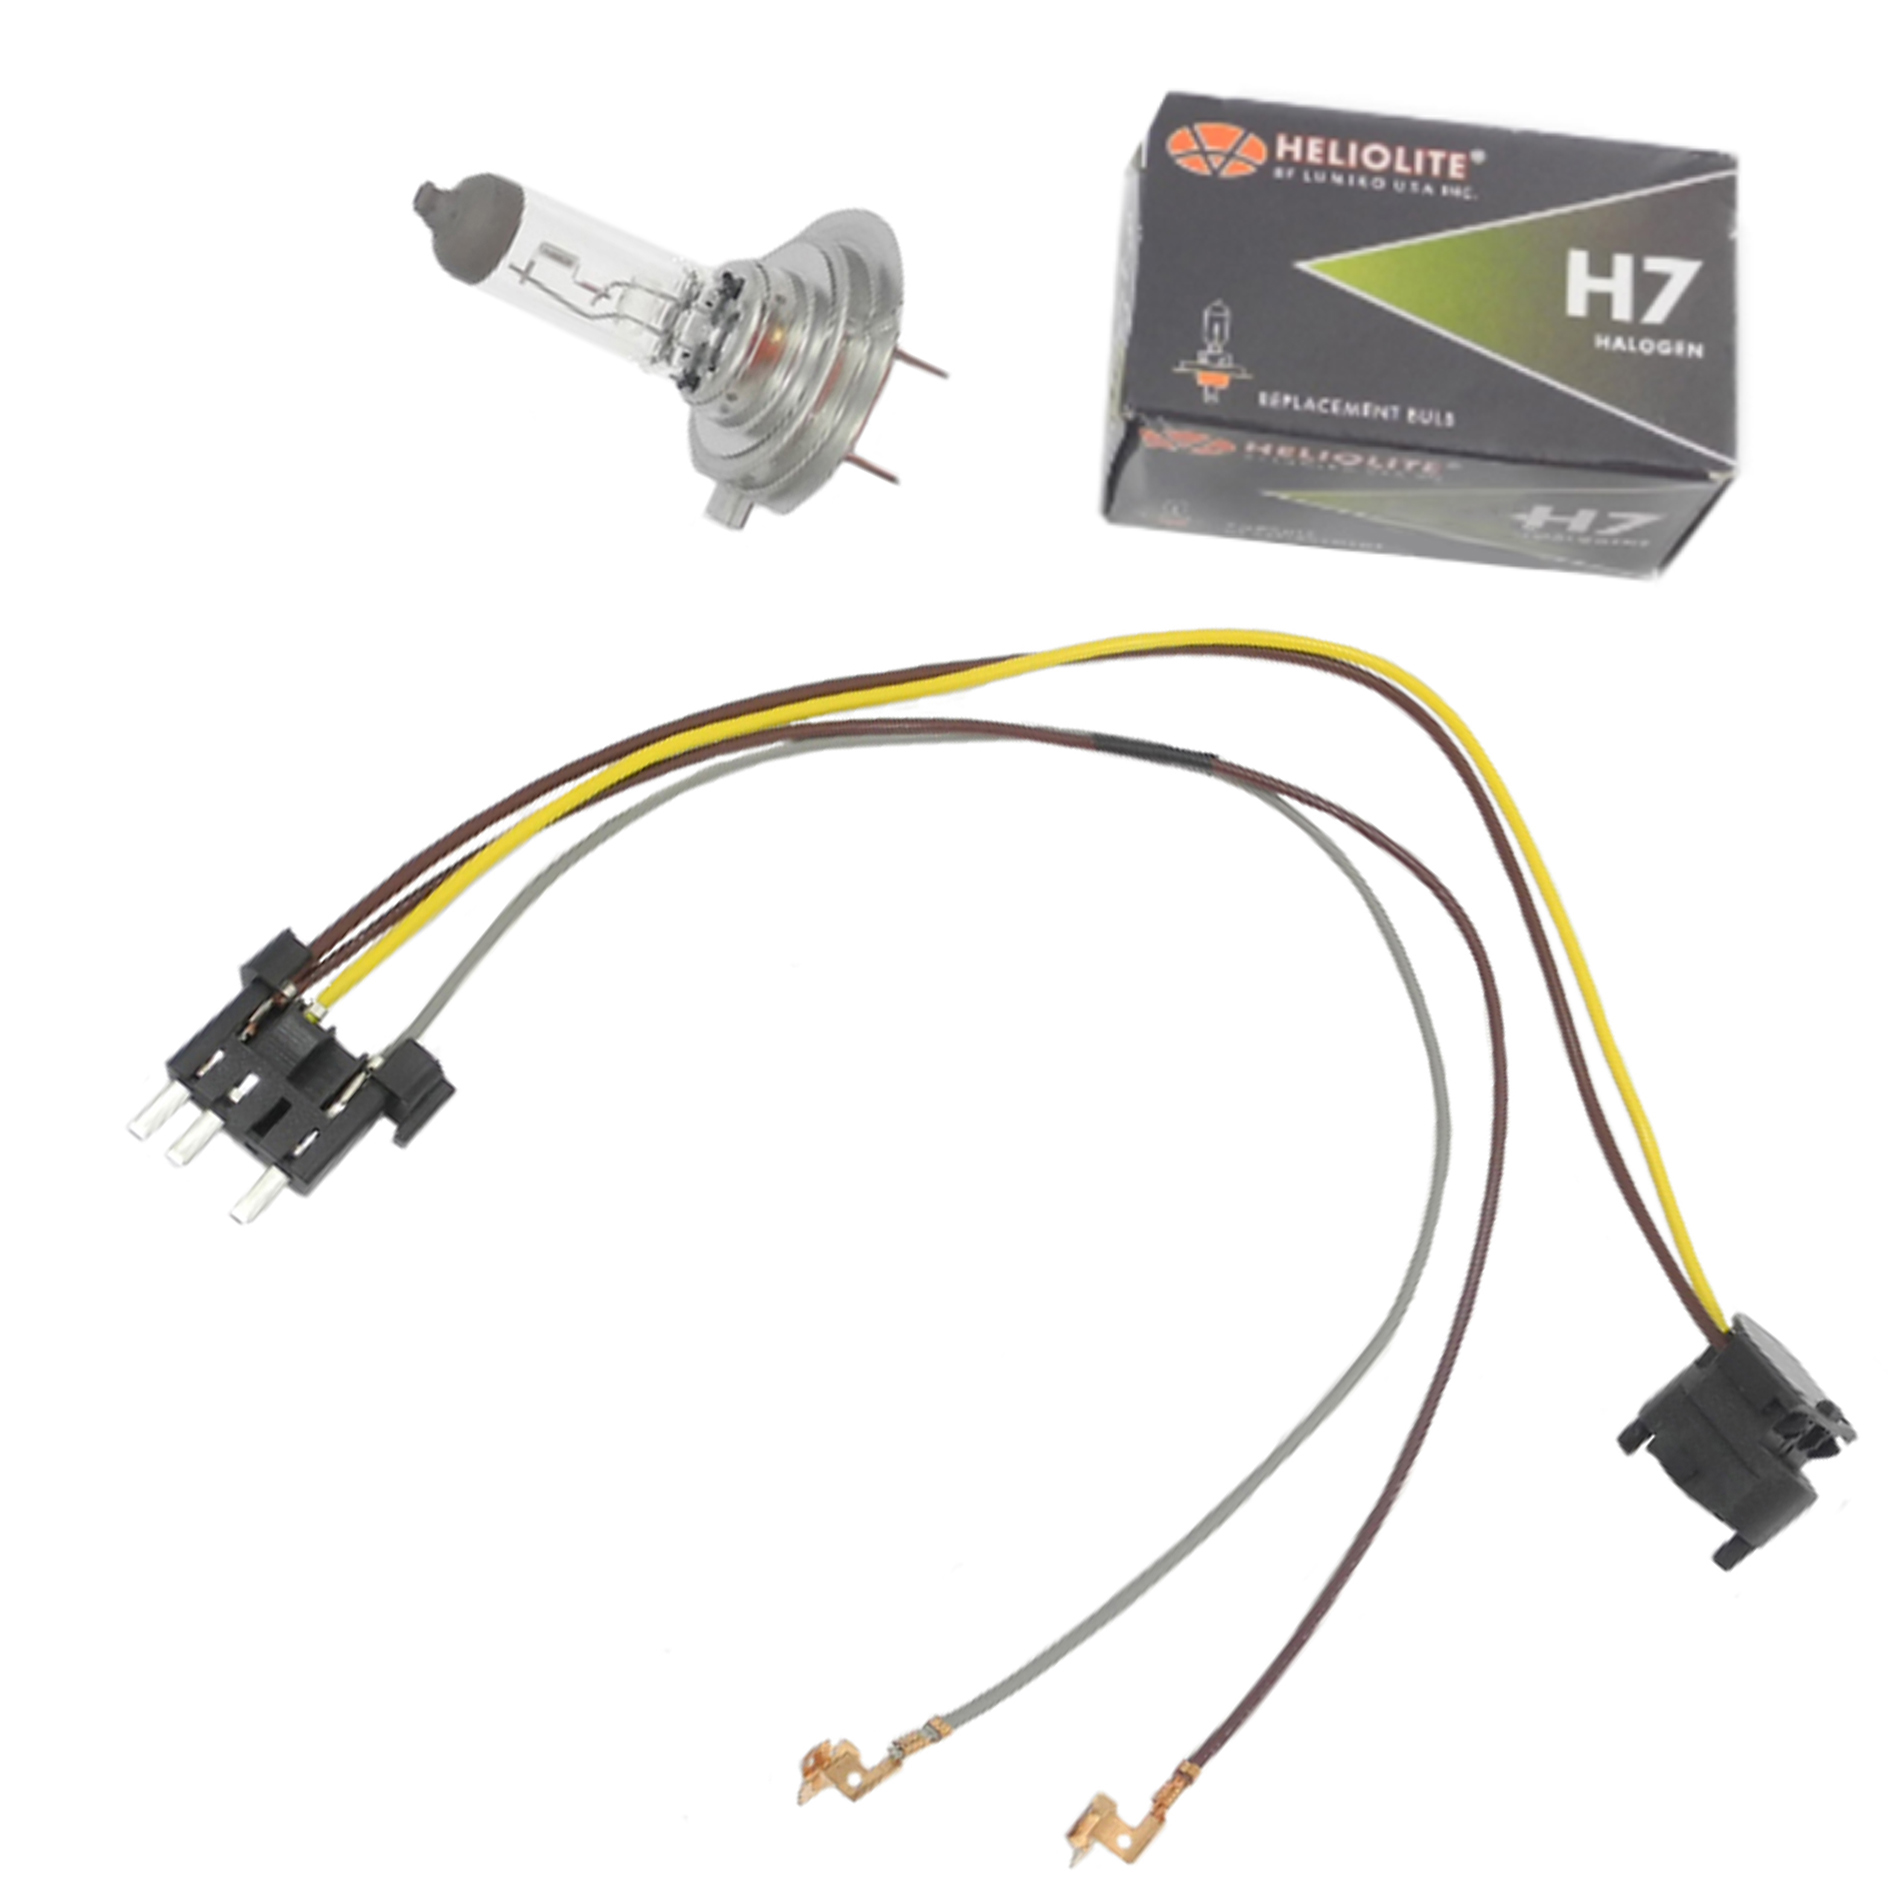 hight resolution of details about headlight wiring harness h7 55w headlight bulb for benz e320 e350 left right